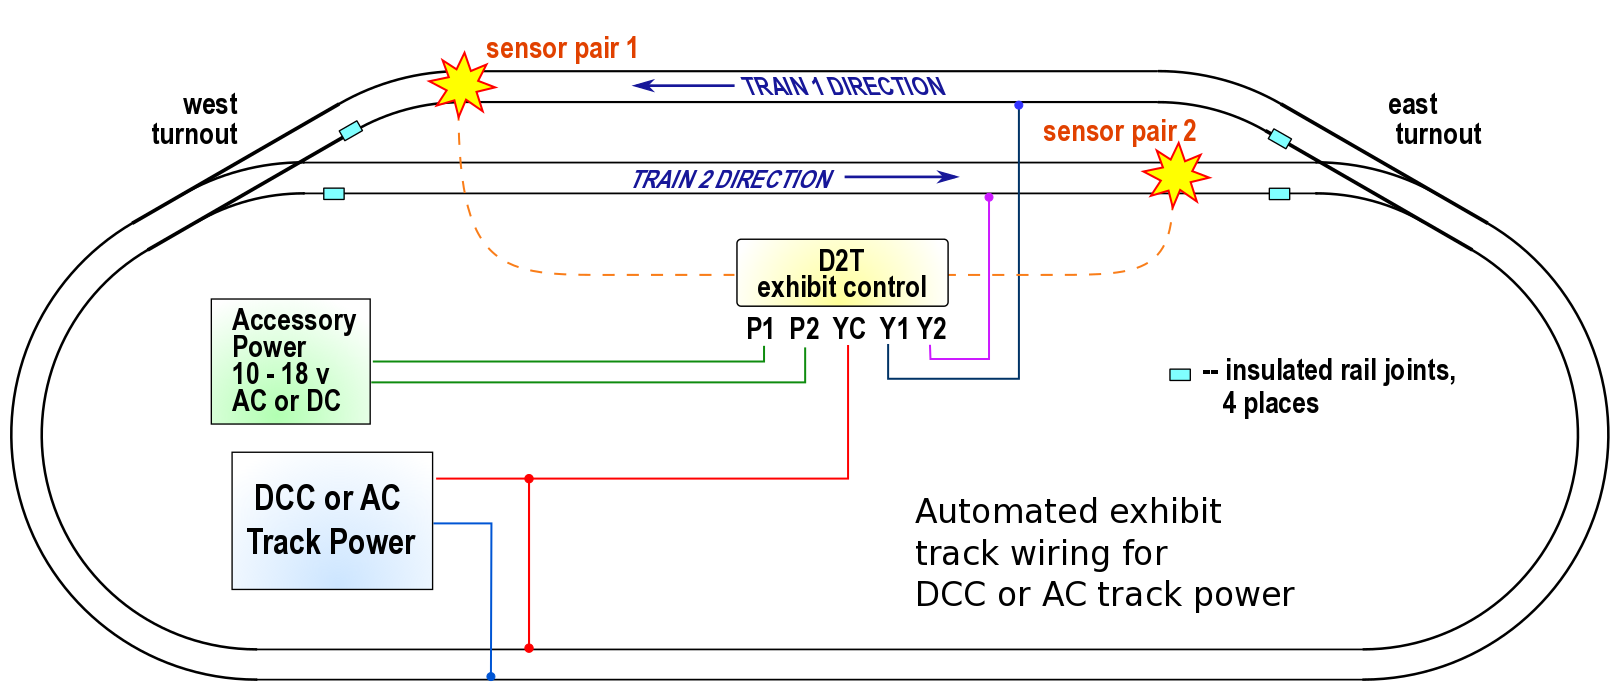 hight resolution of dcc track wiring schematic wiring diagram blog dcc wiring schematic